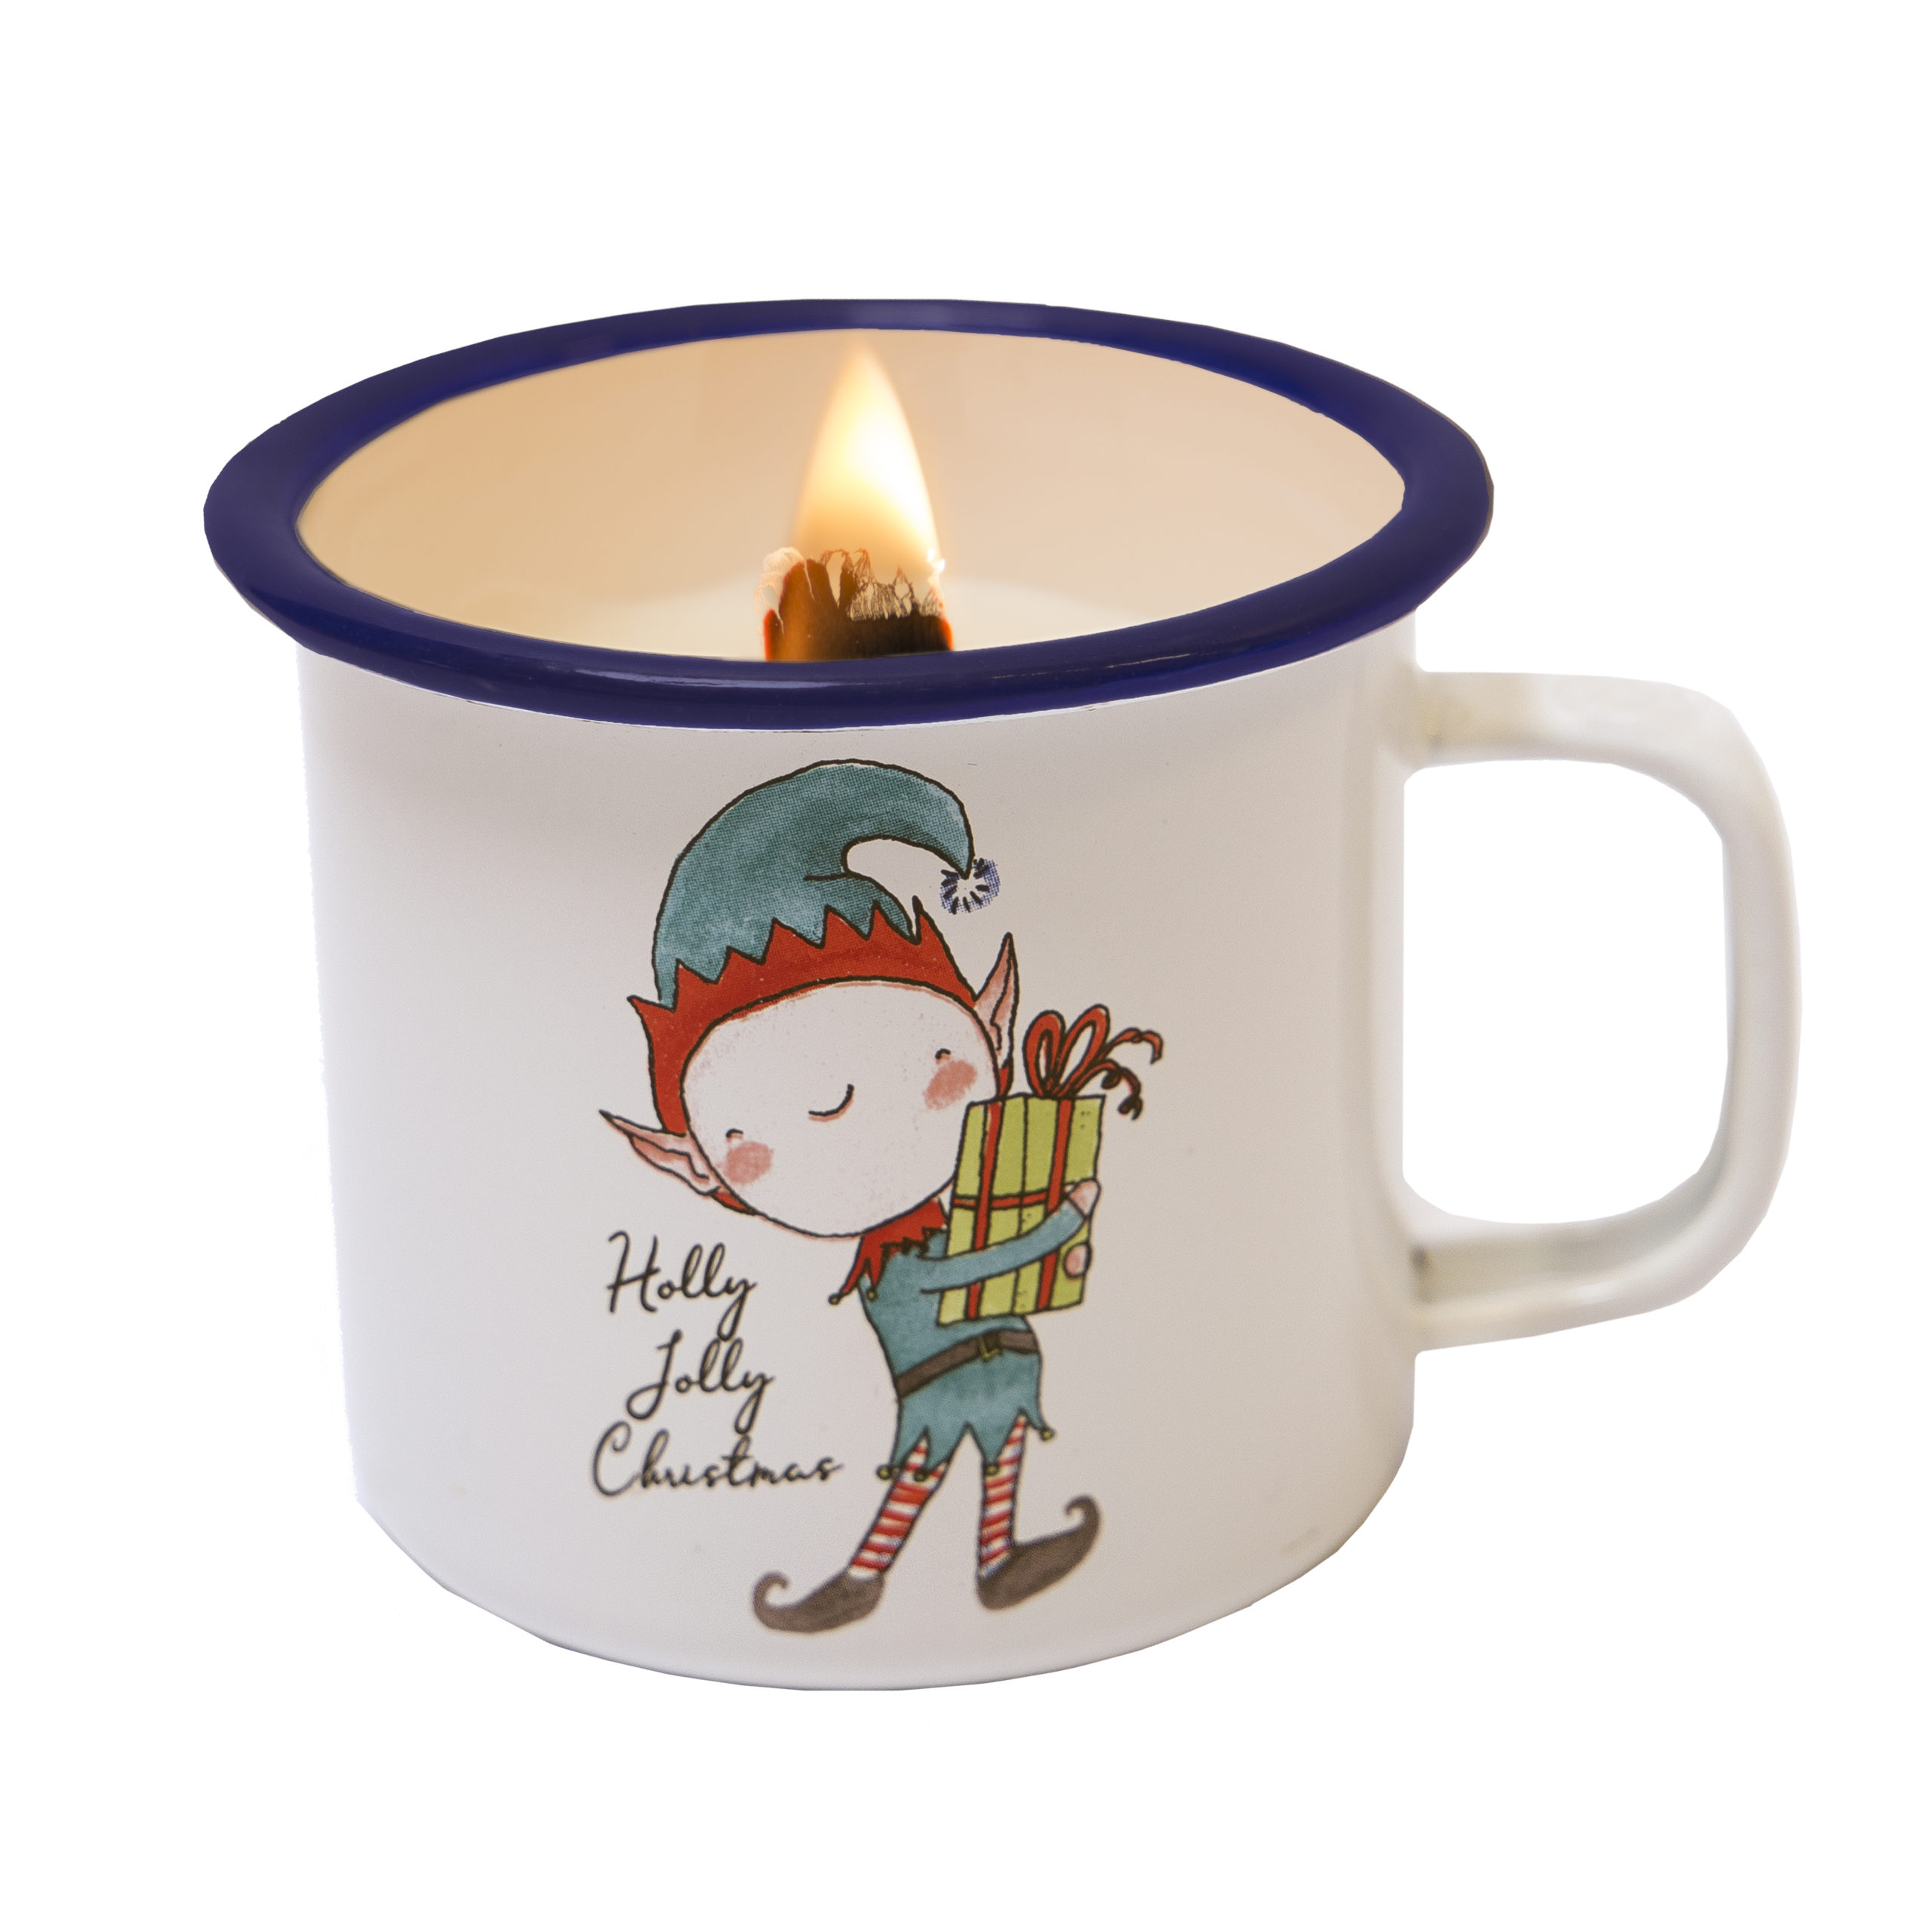 candle in a cup christmas elf joyin